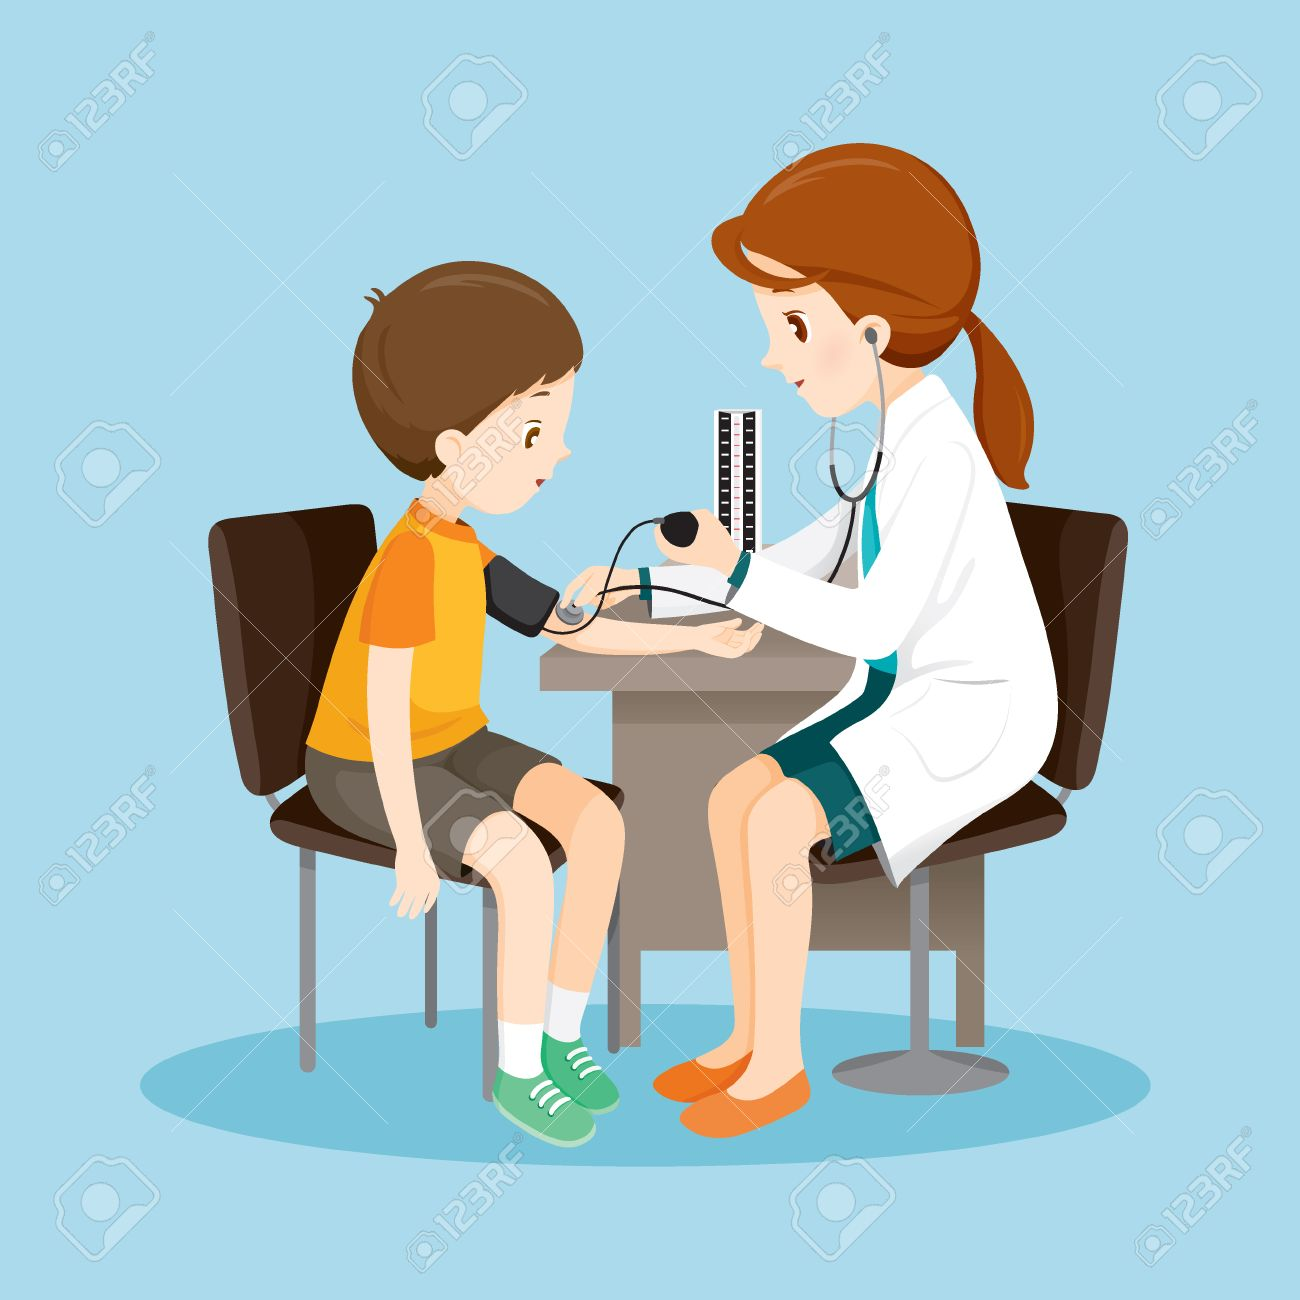 Woman Doctor And Patient Blood Pressure Measuring, Medical, Physician, Hospital, Checkup, Patient, Healthy, Treatment, Personnel - 60339364